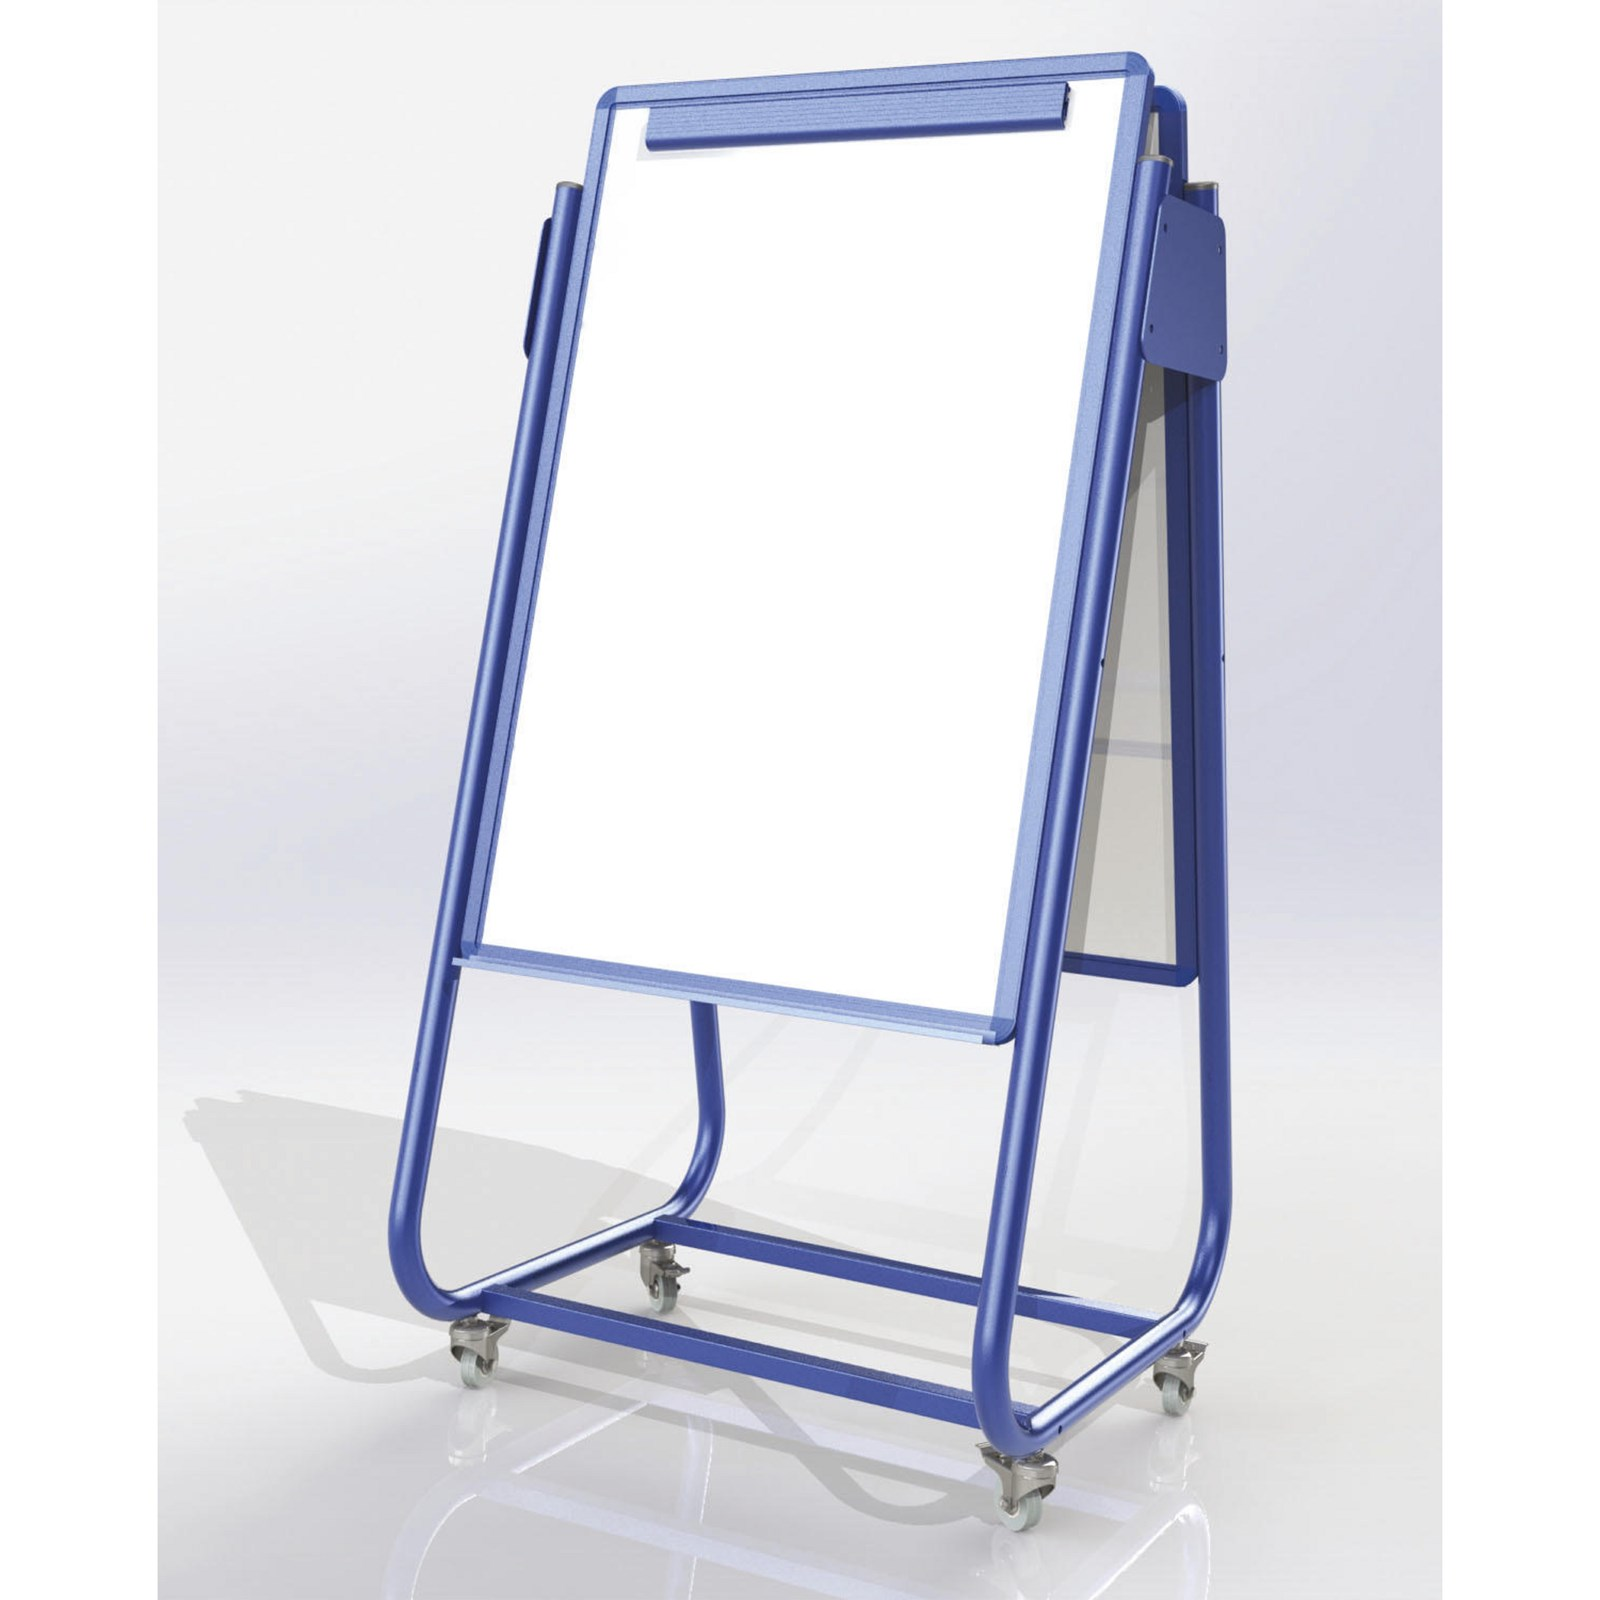 Mobile Magnetic Display Easel Double Sided - Blue